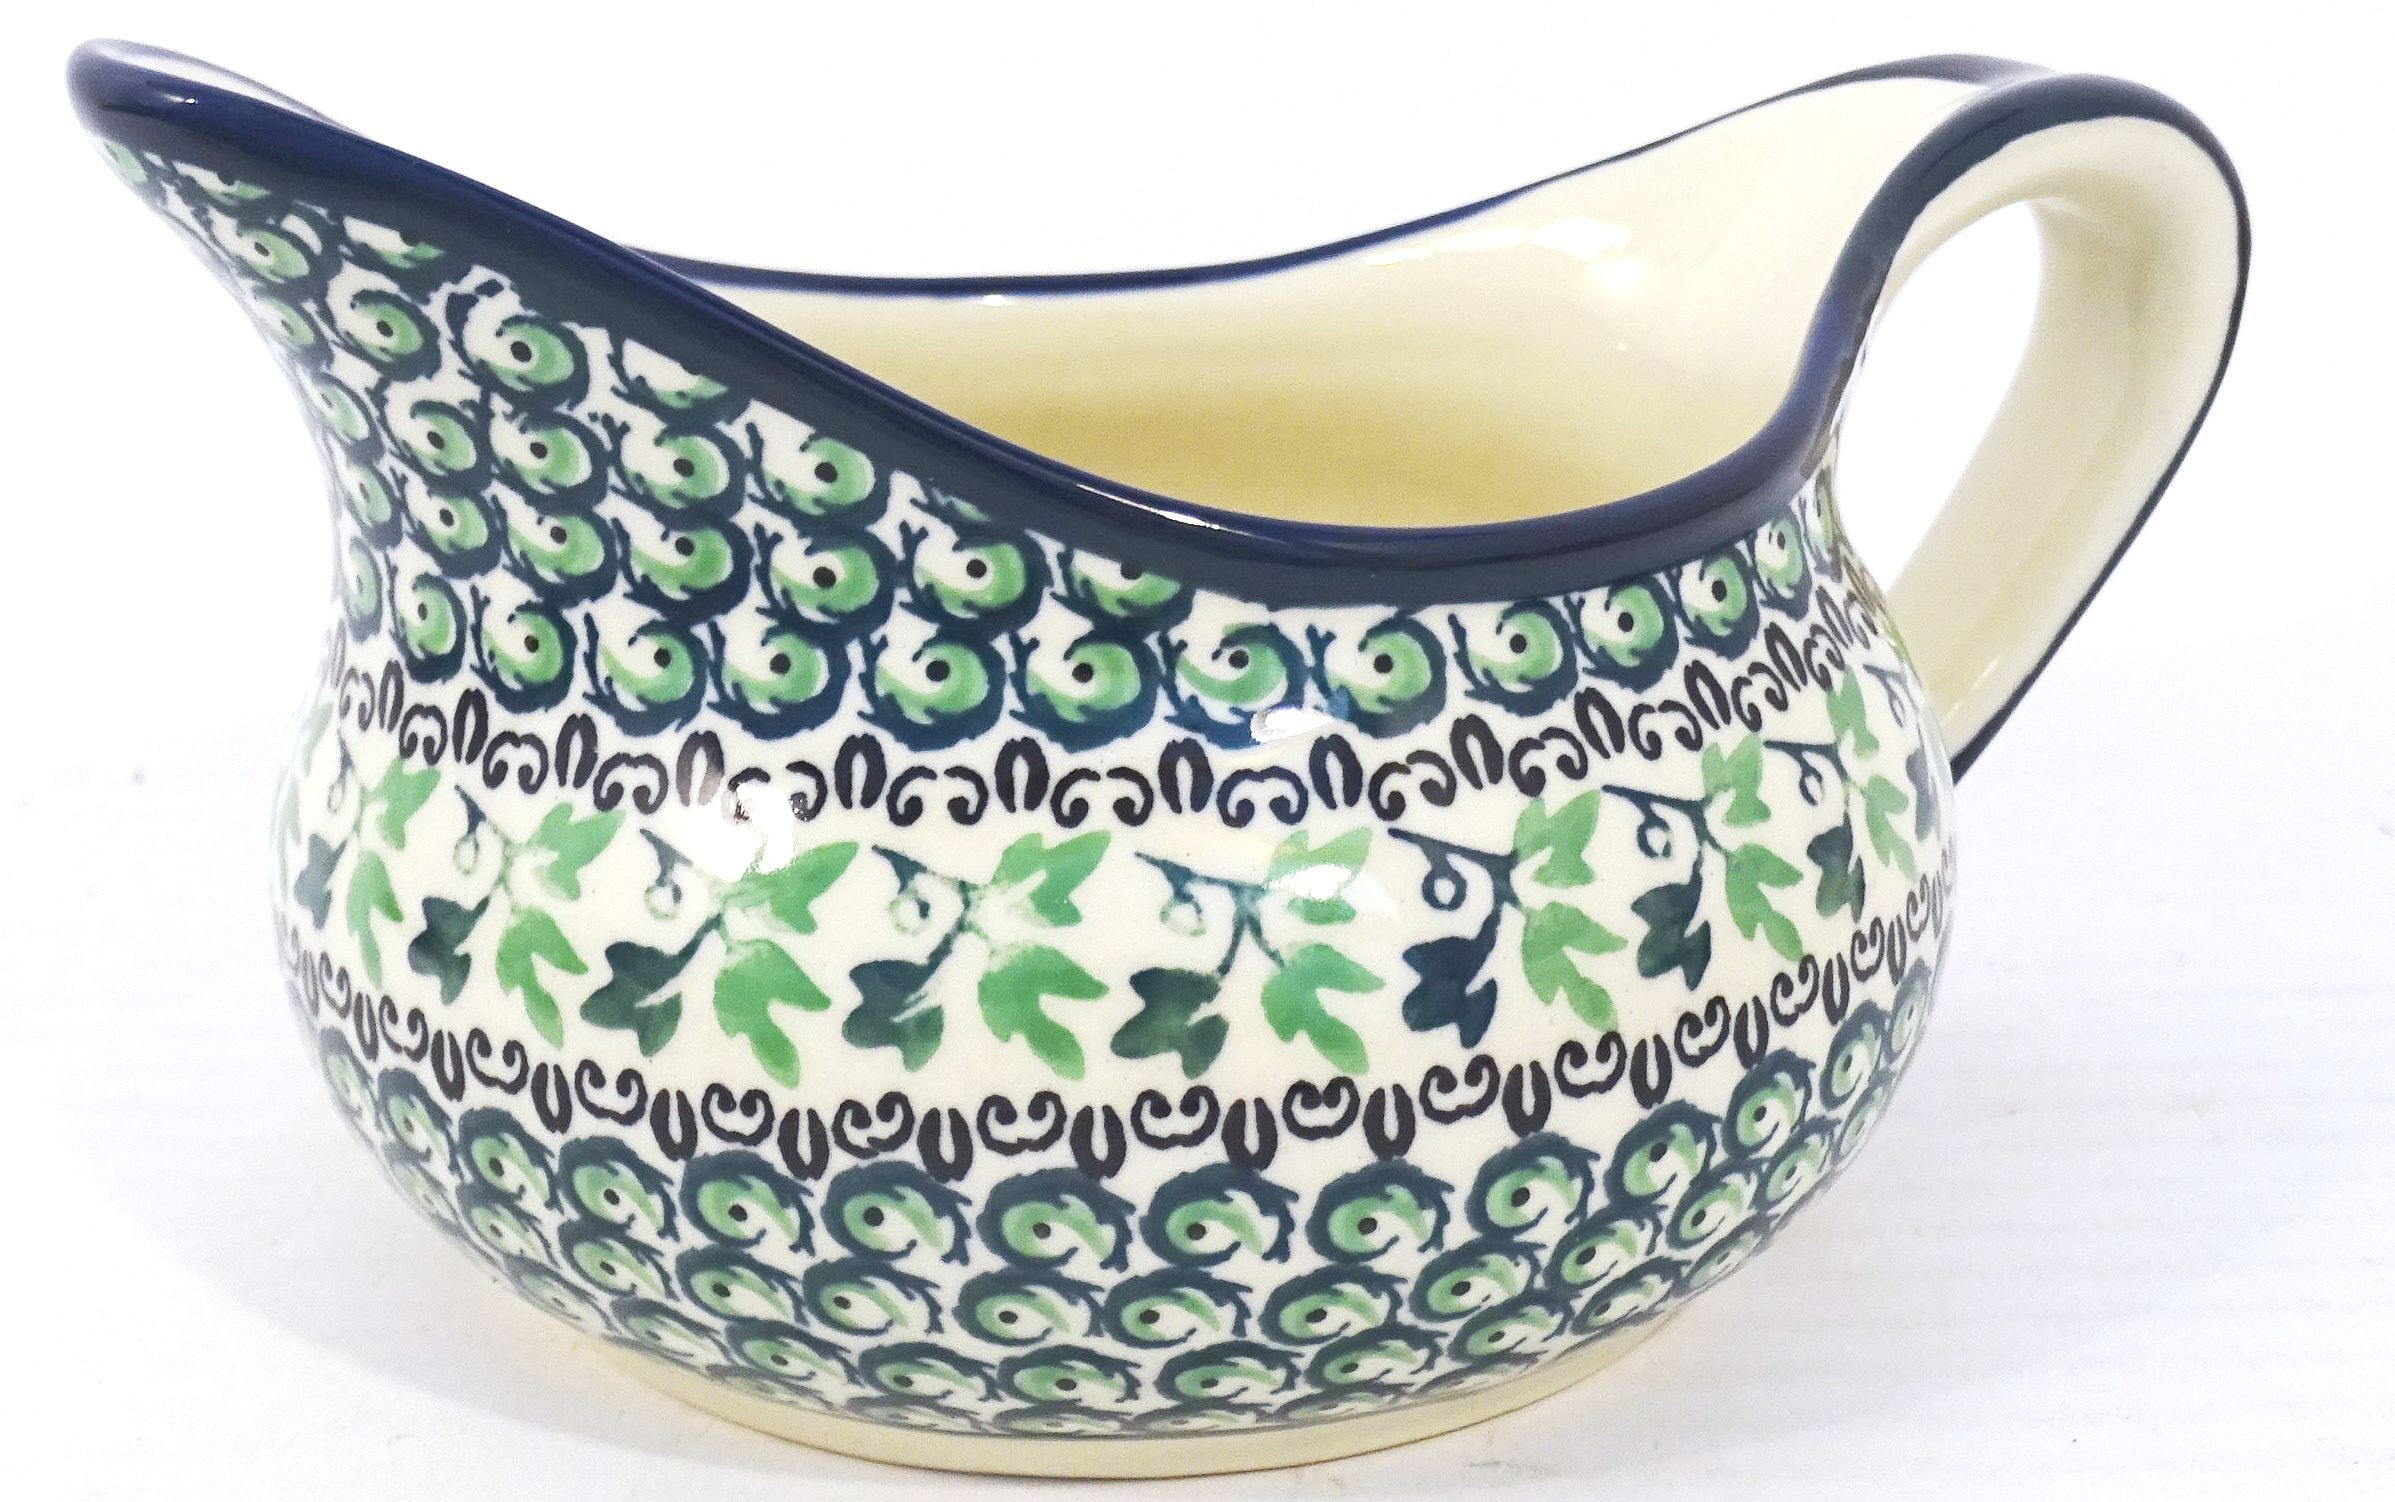 Pottery Avenue 2 Cup IVY Stoneware Gravy Boat   CLASSIC